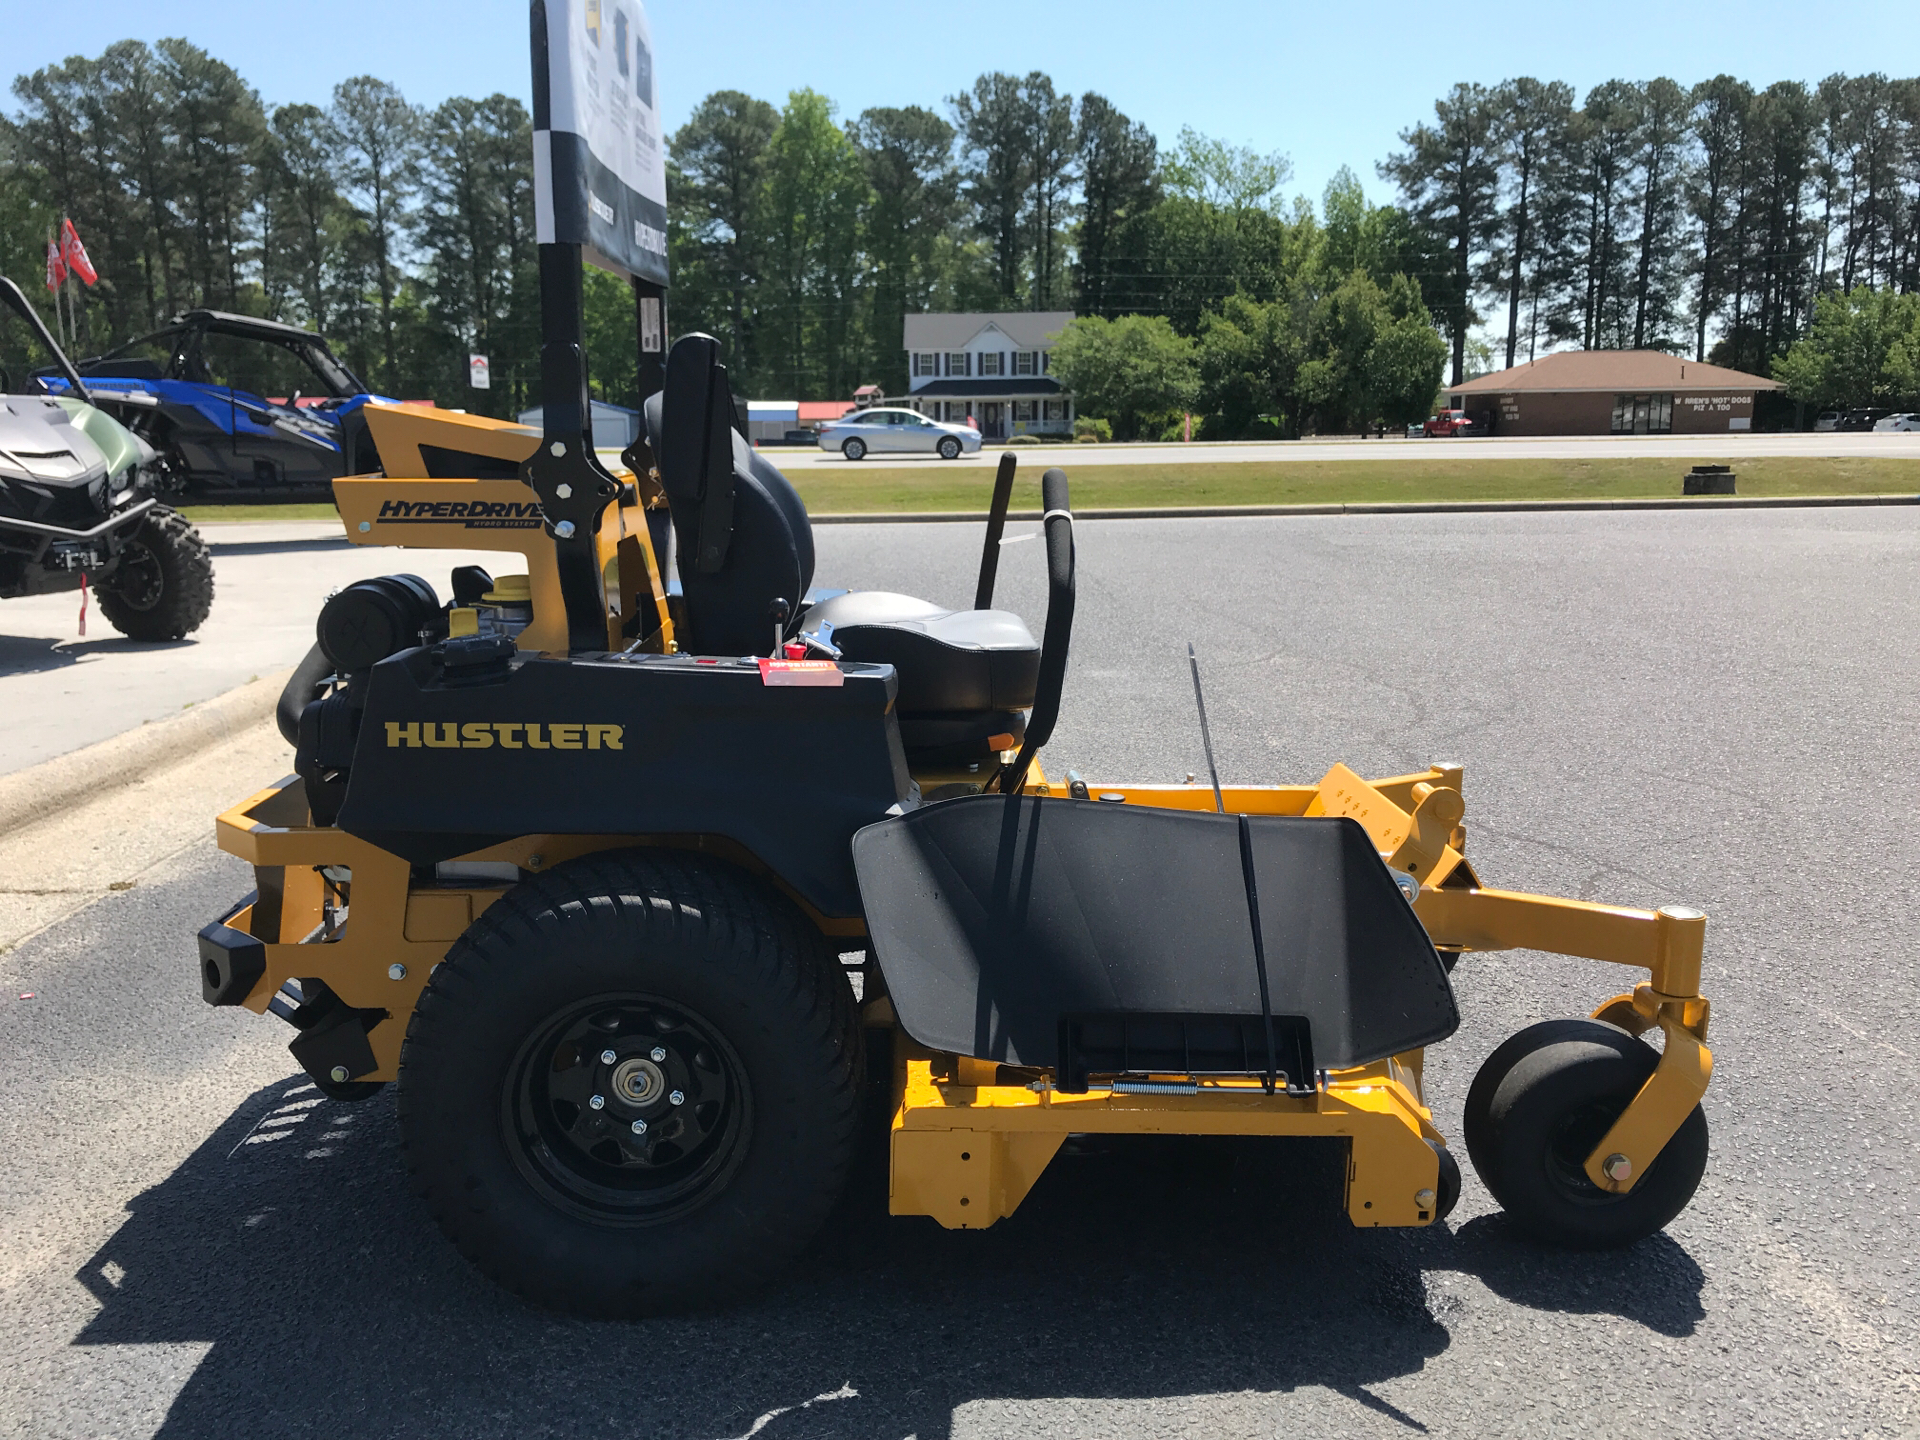 2021 Hustler Turf Equipment Super Z HyperDrive 60 in. Vanguard Big Block EFI 37 hp with Oil Guard in Greenville, North Carolina - Photo 4